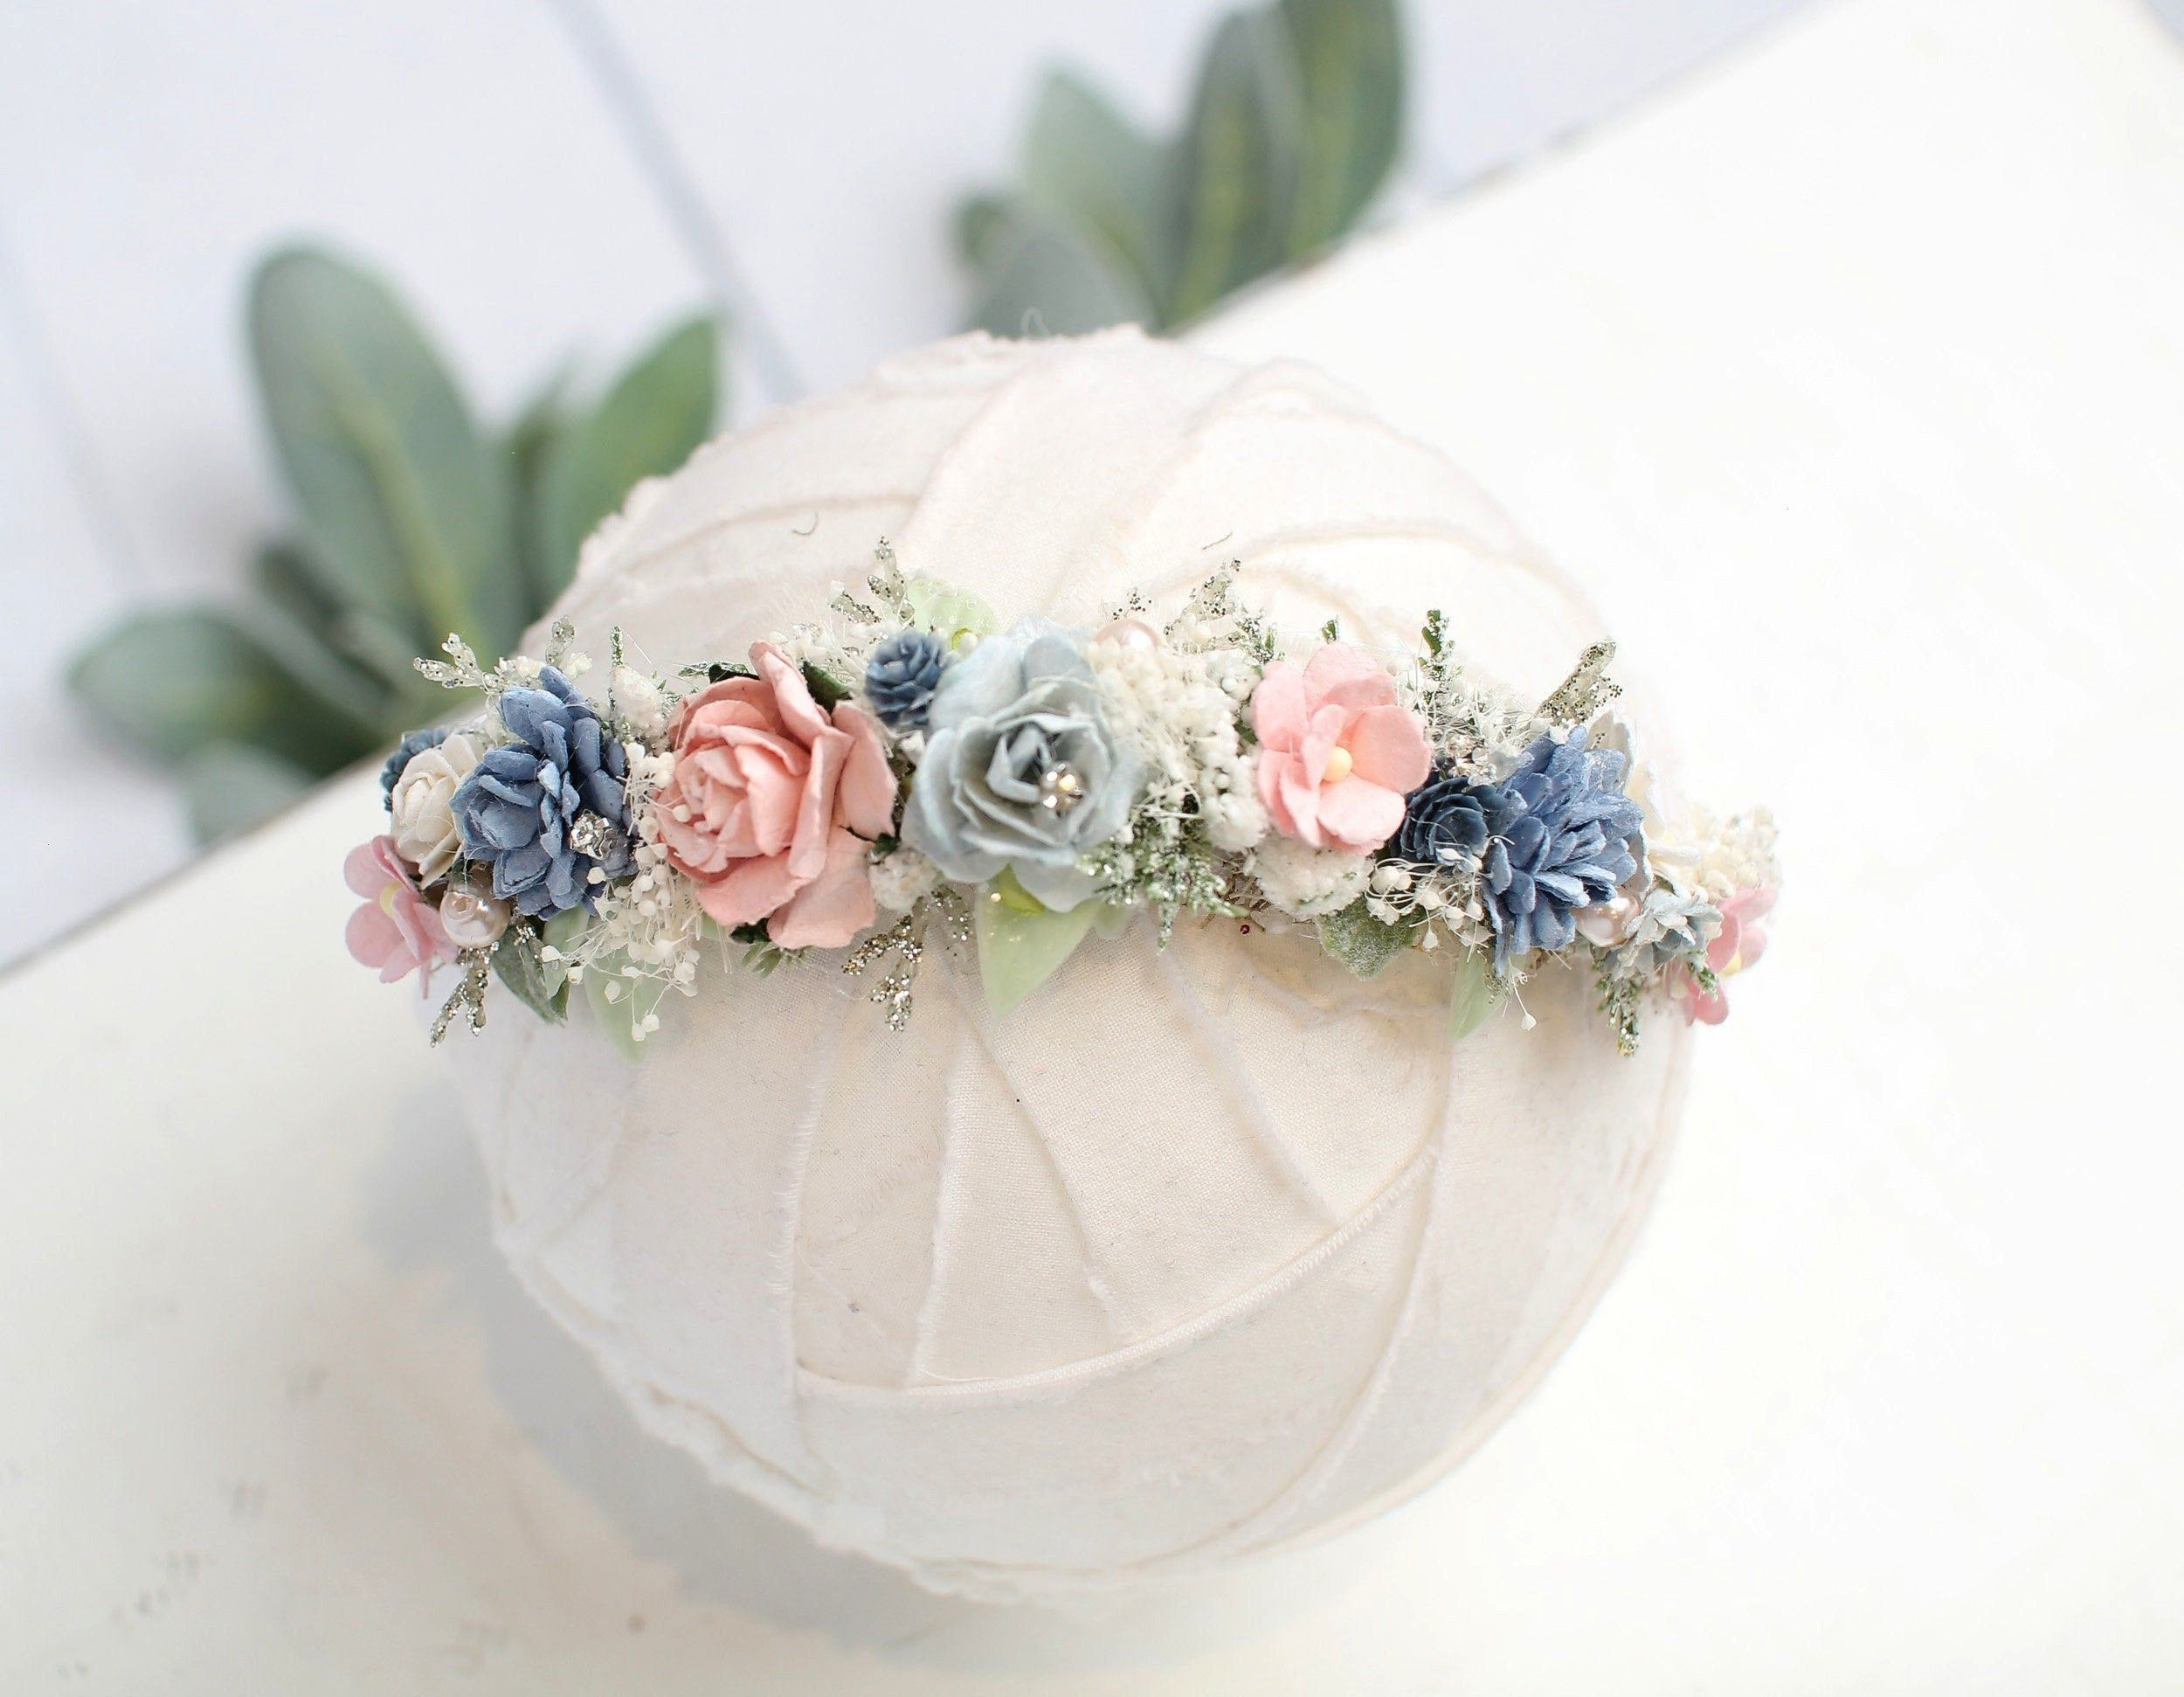 Wonderland  dainty floral halo headband in light blue dusty blue pink blush ivory champagne with pearls and diamonds RTS  Winter Wonderland  dainty floral halo headband i...